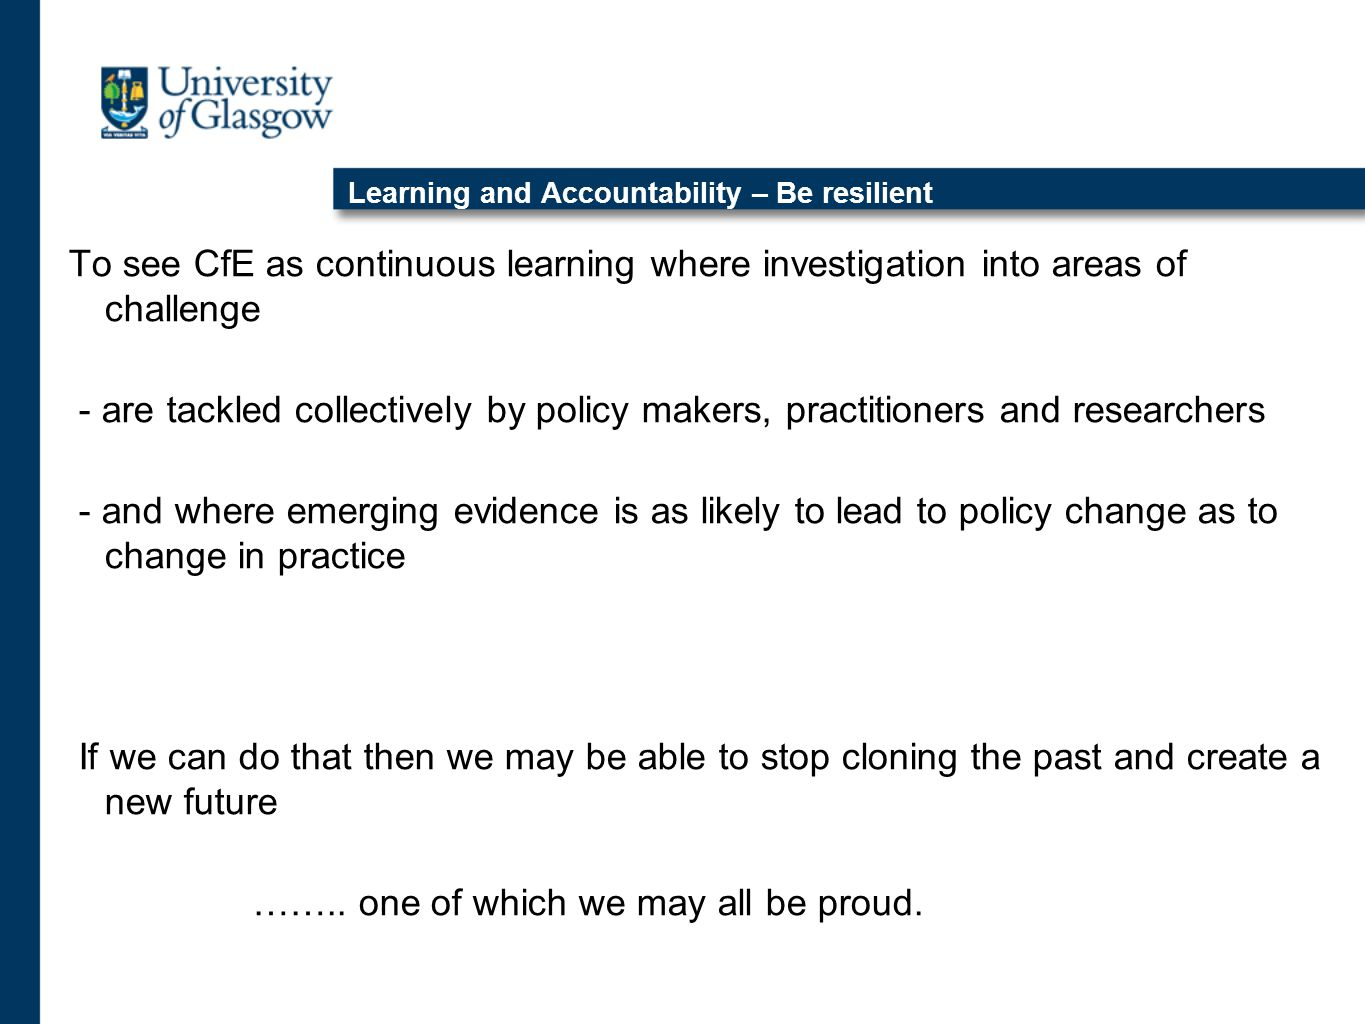 Learning and Accountability – Be resilient To see CfE as continuous learning where investigation into areas of challenge - are tackled collectively by policy makers, practitioners and researchers - and where emerging evidence is as likely to lead to policy change as to change in practice If we can do that then we may be able to stop cloning the past and create a new future ……..